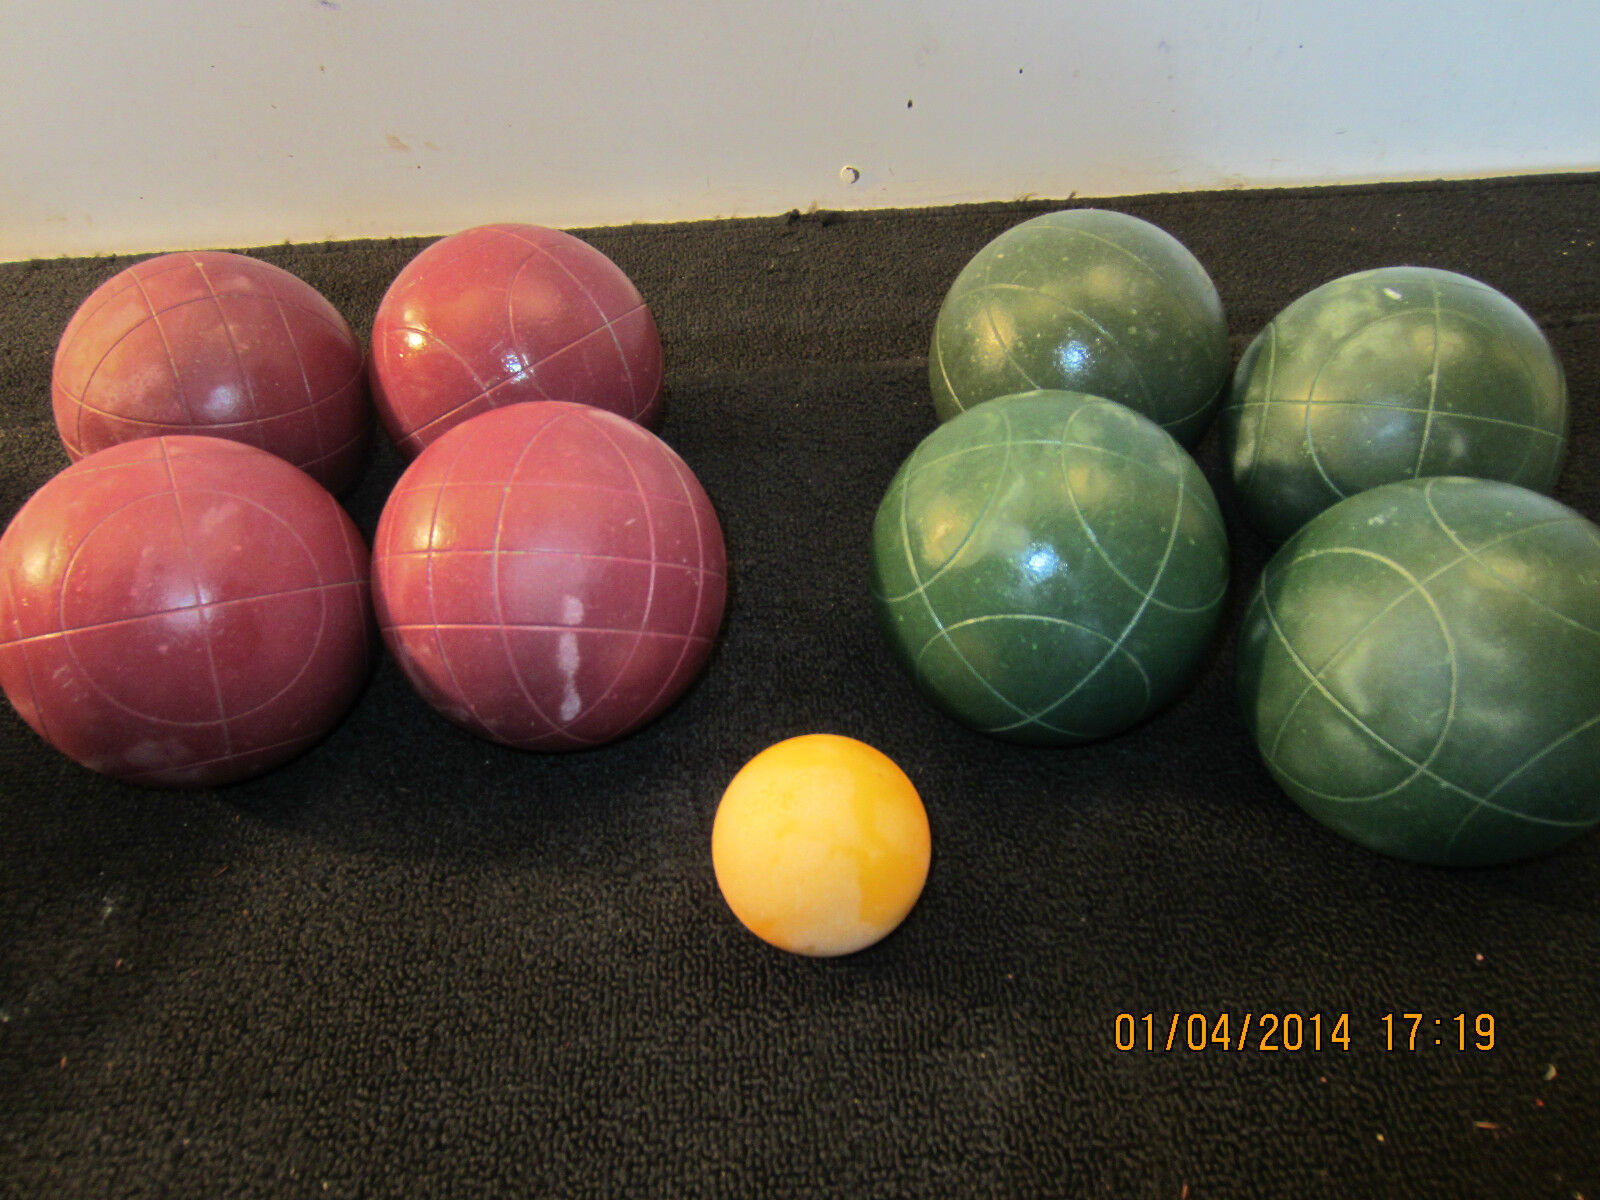 11 PC FRANKLIN CLASSIK SERIES, BOCCE BALL SET